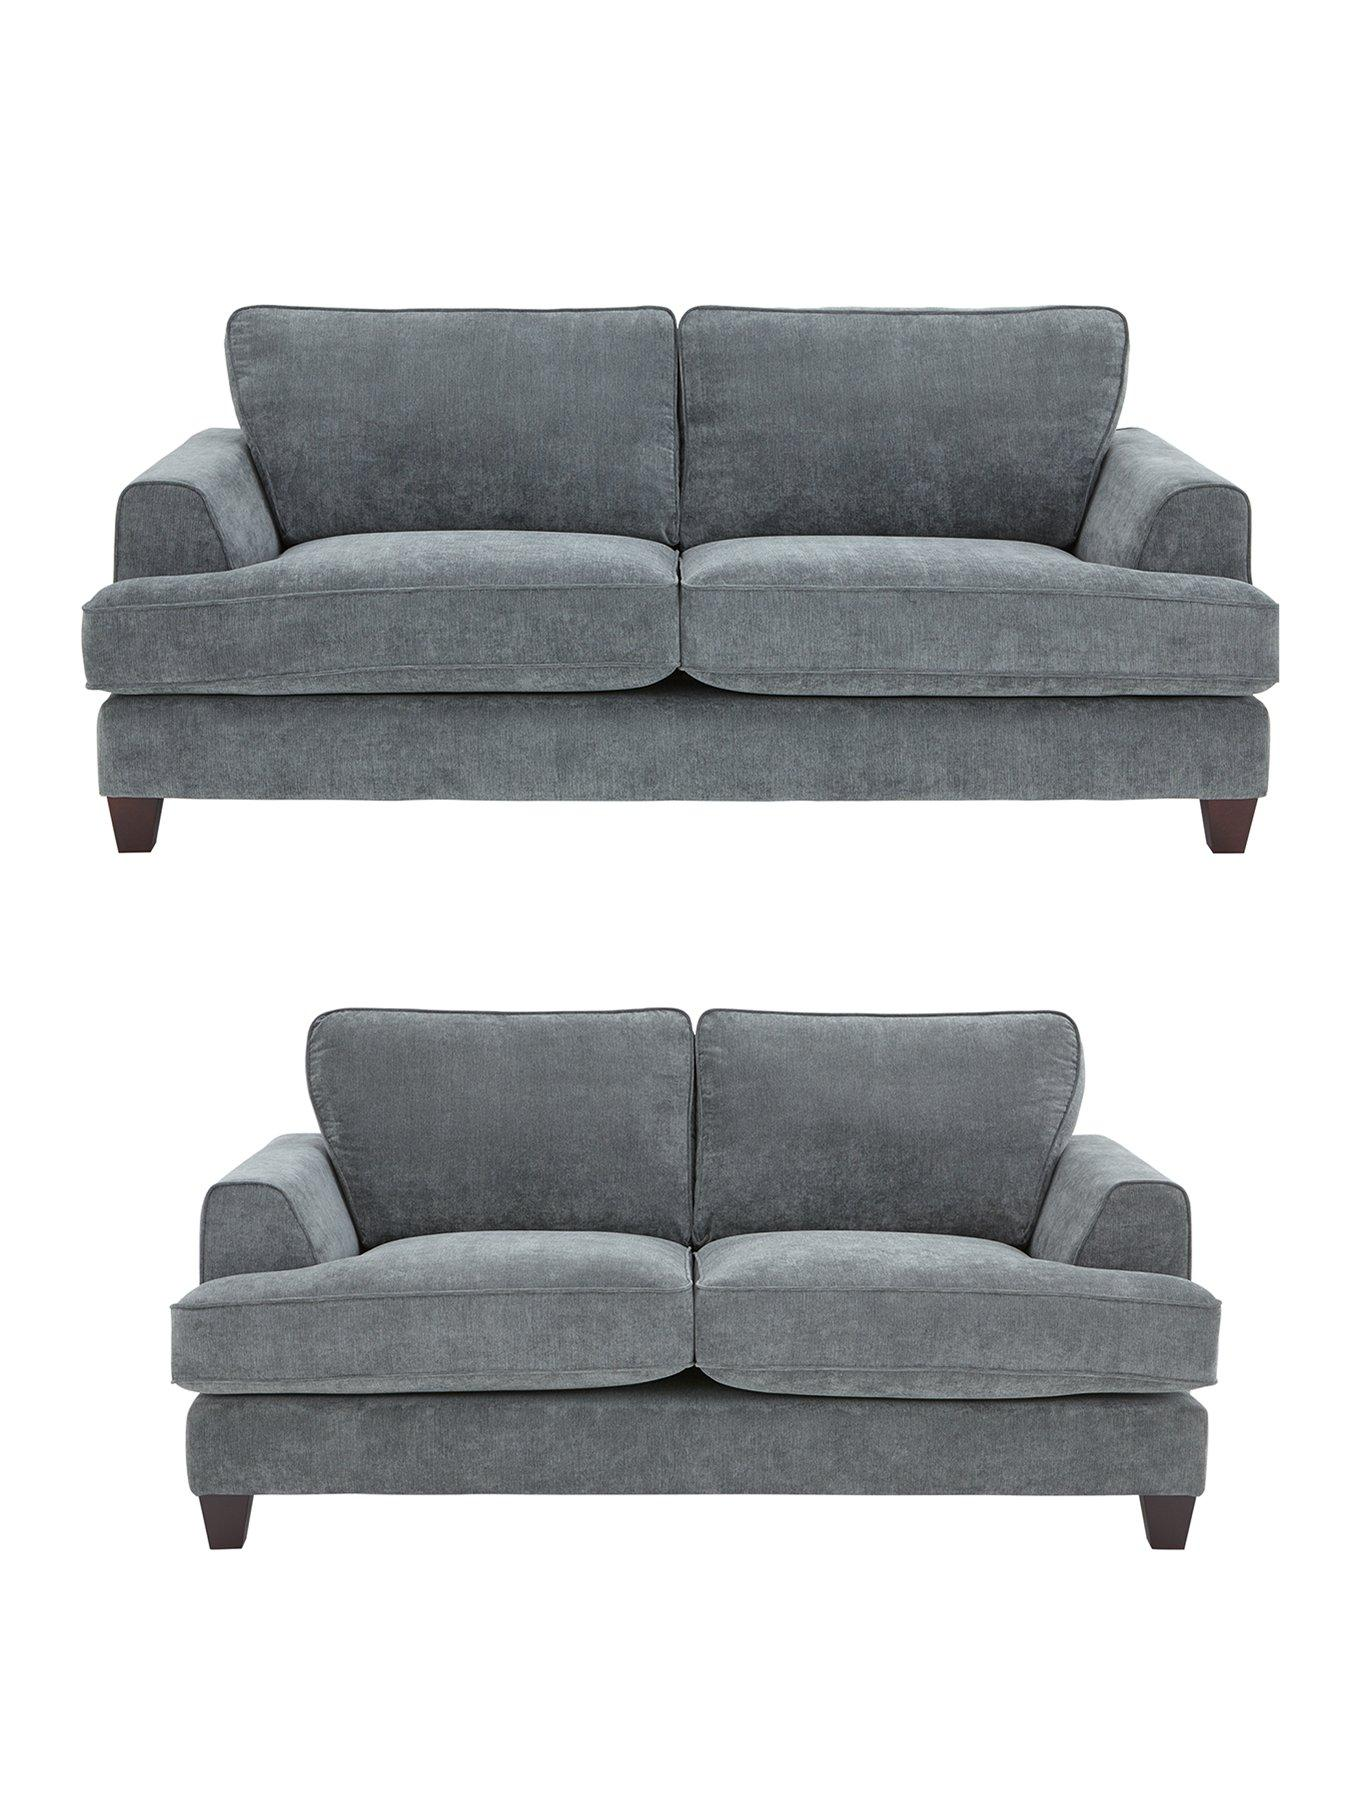 buy sofa uk cat resistant ideal home new camden 3 seater 2 fabric set and save